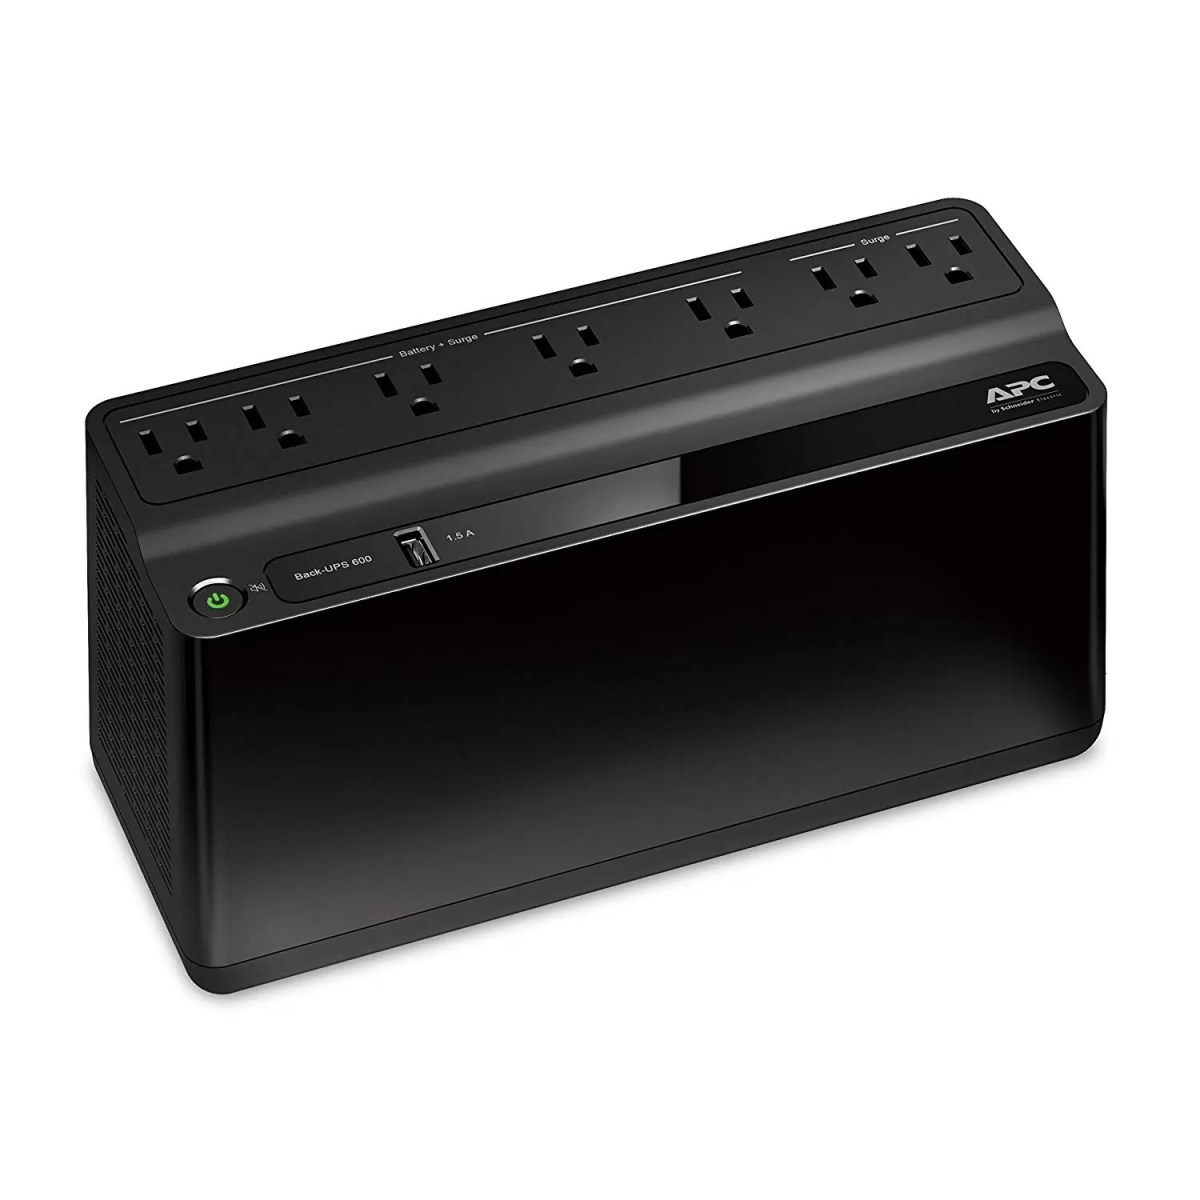 APC UPS 600VA Battery Backup & Surge Protector with USB Charging Port, APC UPS BackUPS (BE600M1) Review